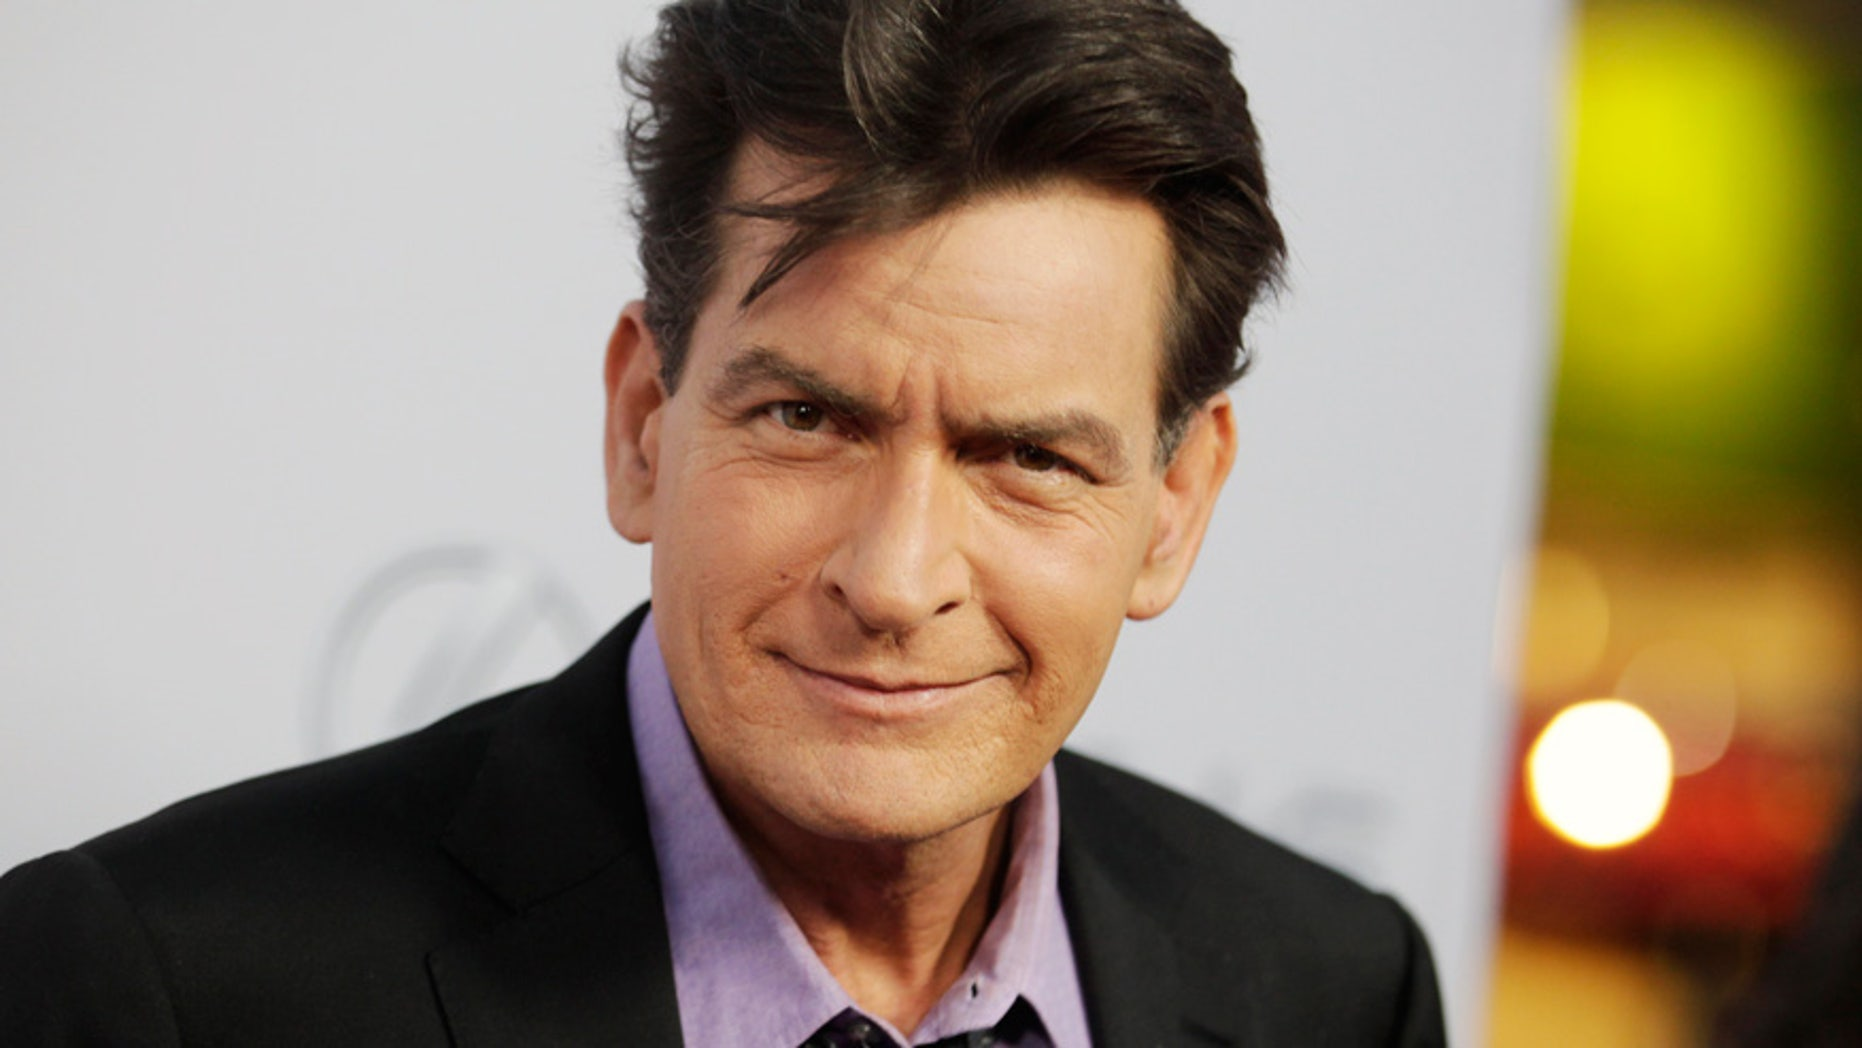 """Cast member Charlie Sheen poses at the premiere of his new film """"Scary Movie 5"""" in Hollywood April 11, 2013."""